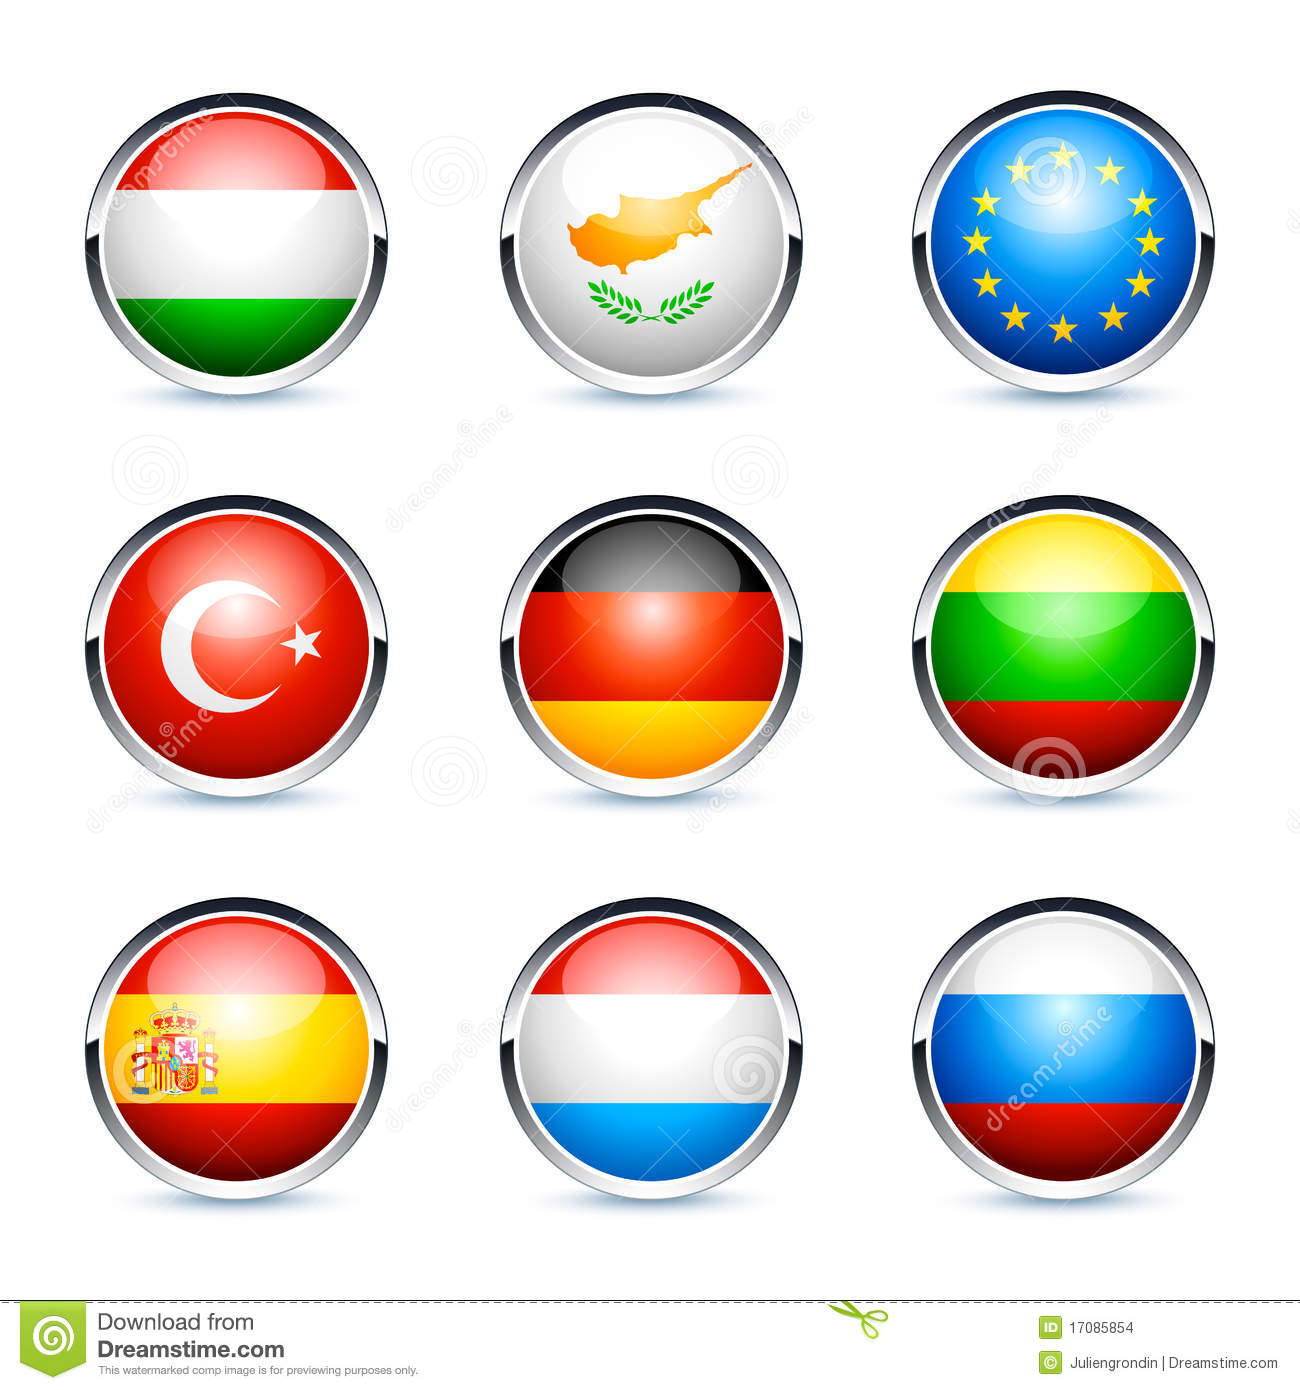 Get globalized with 12 sets of flag icons from all over the world